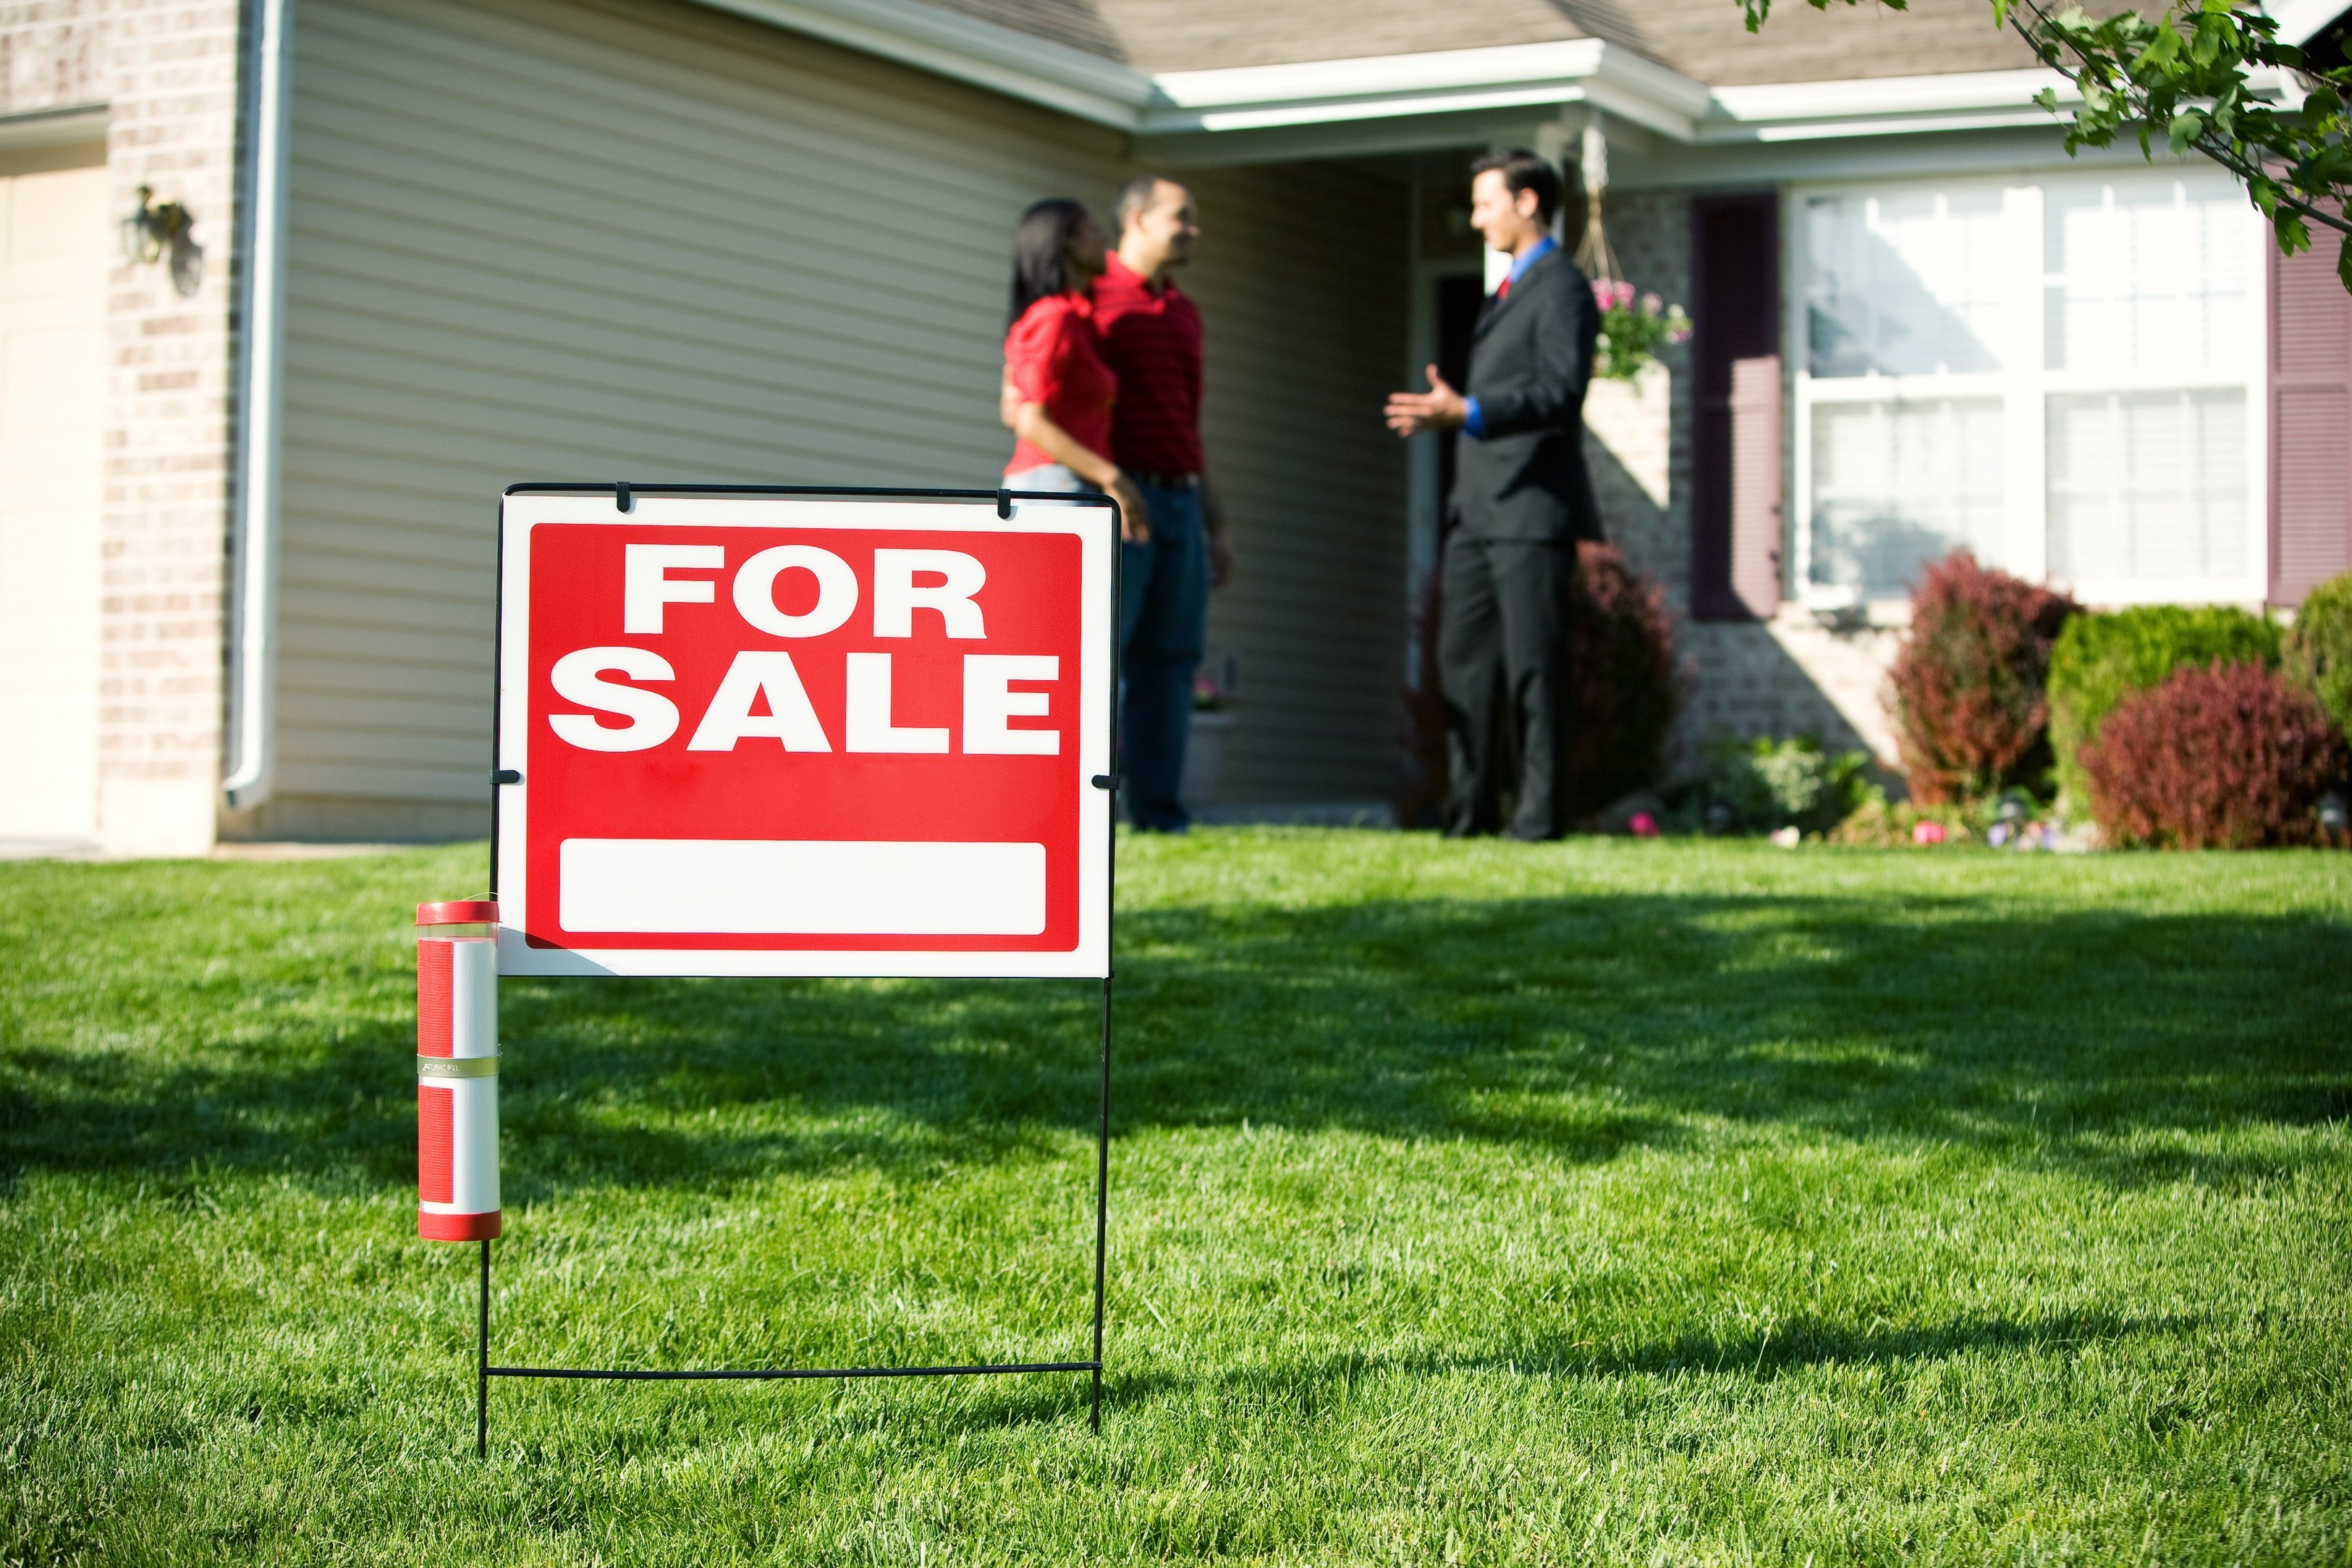 10 Tips to Get a Home Ready For Sale